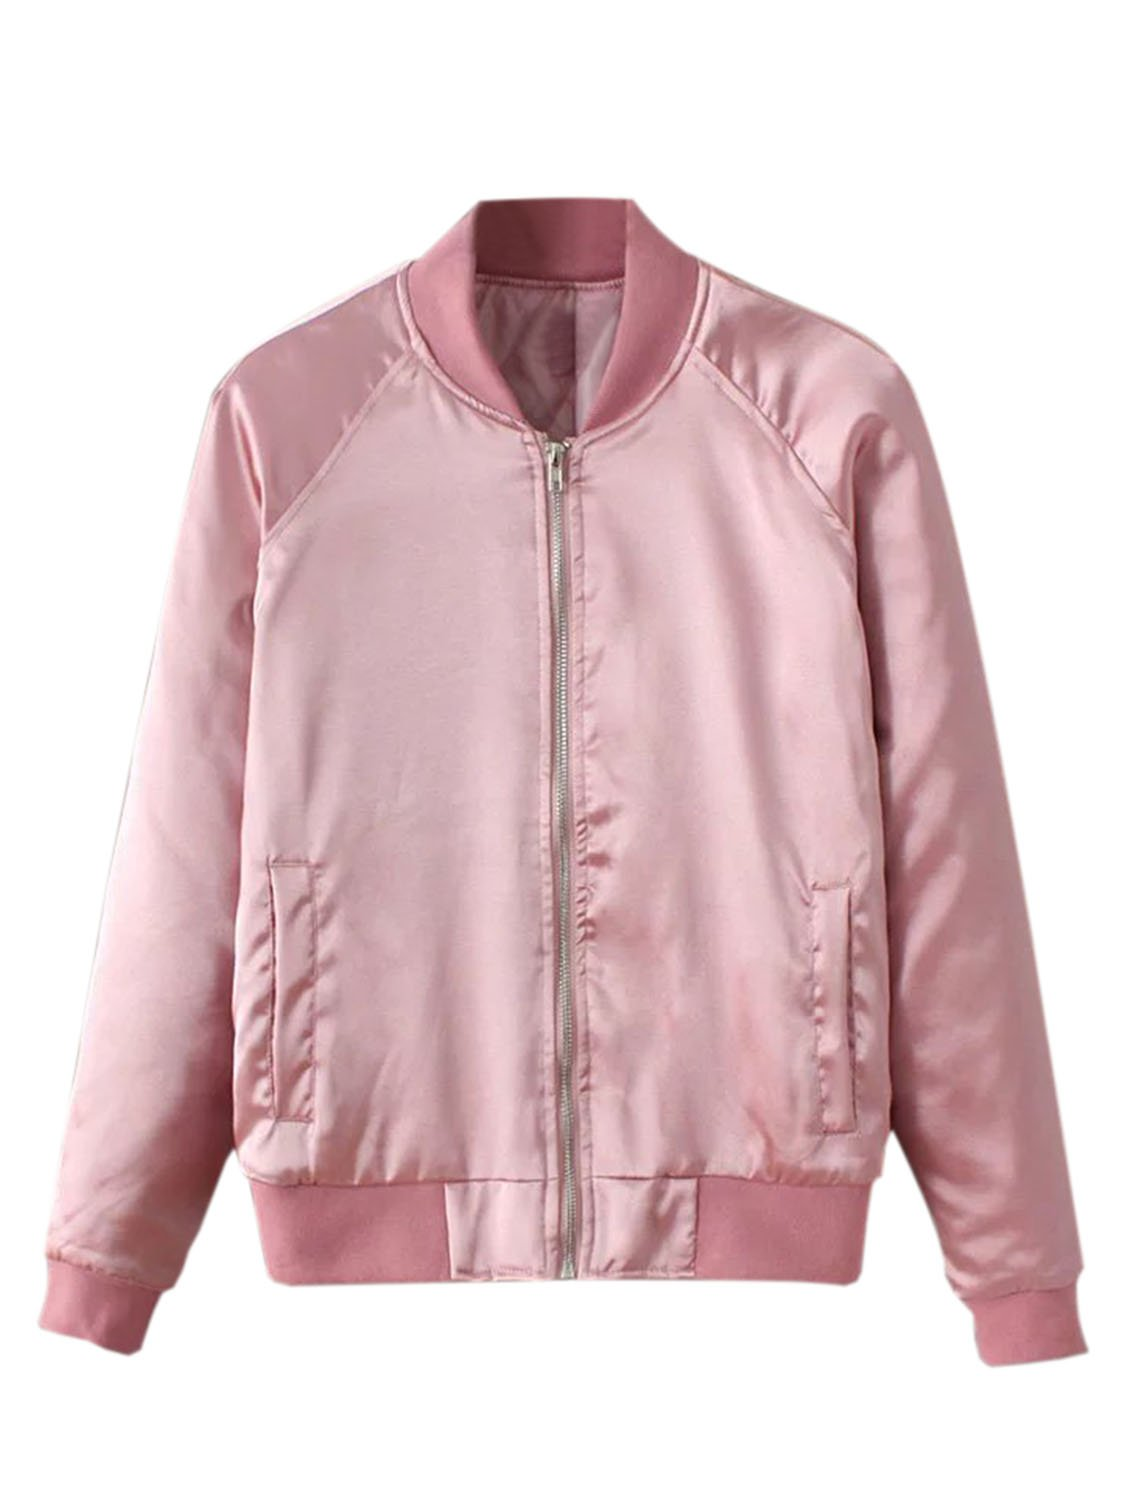 Choies Women Pink Zip Up Satin Classic Lightweight Padded Bomber Jacket Coat M